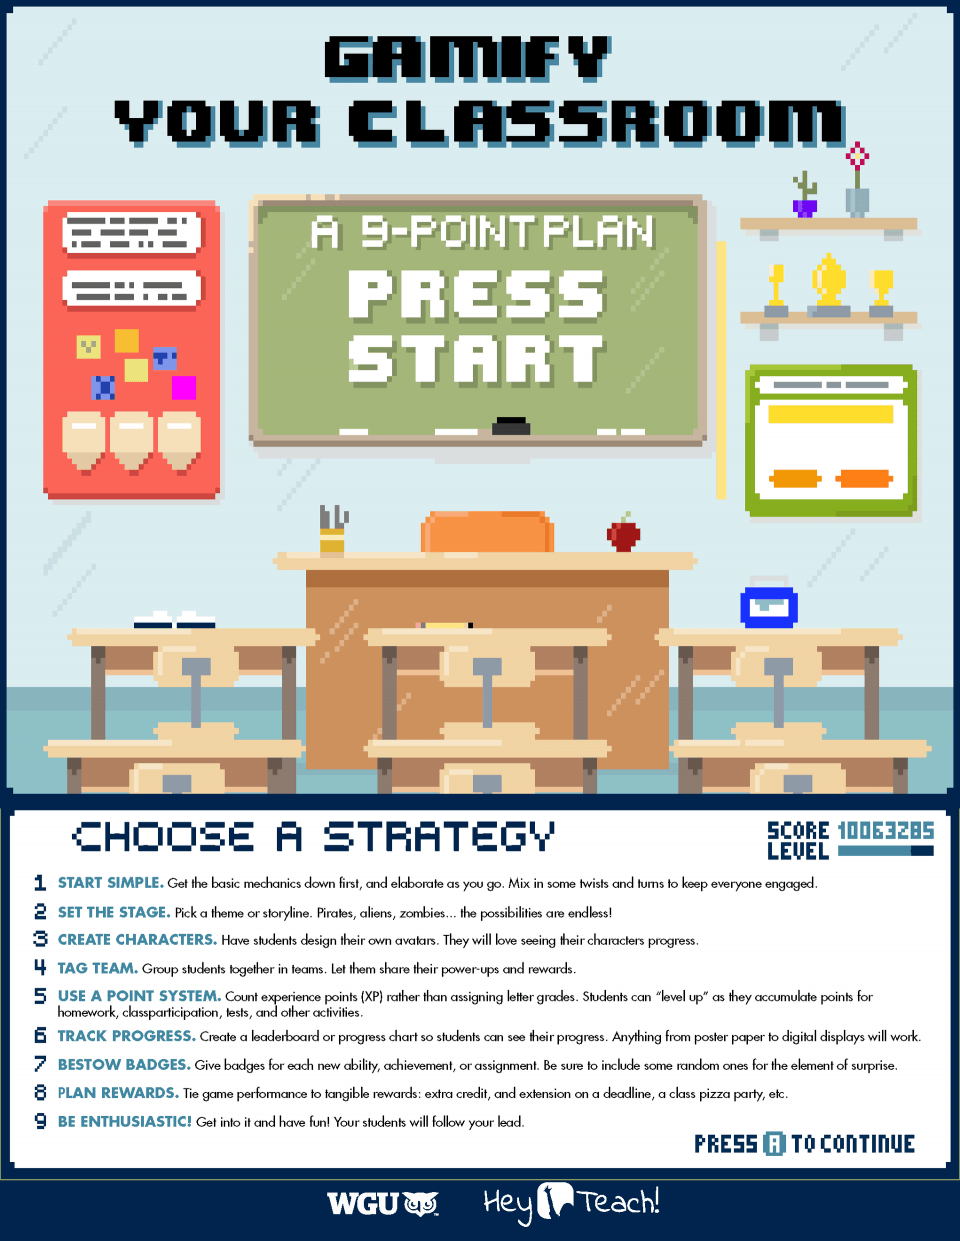 9 Key Elements of Classroom Gamification Infographic